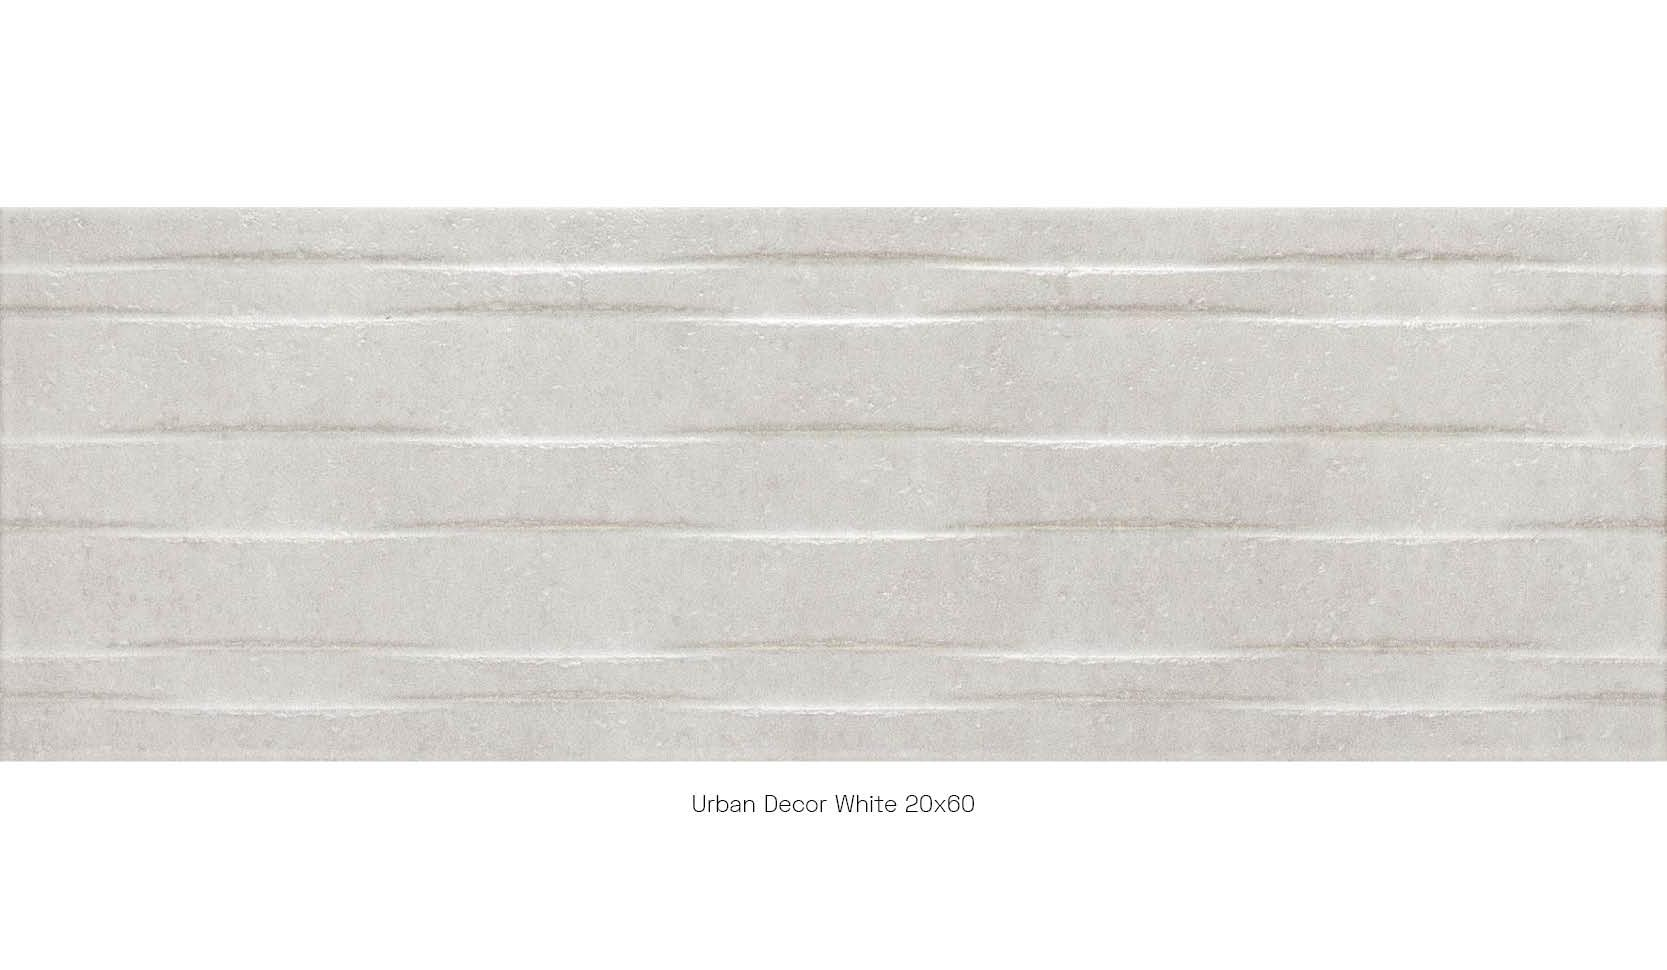 Urban decor white 20 x 60